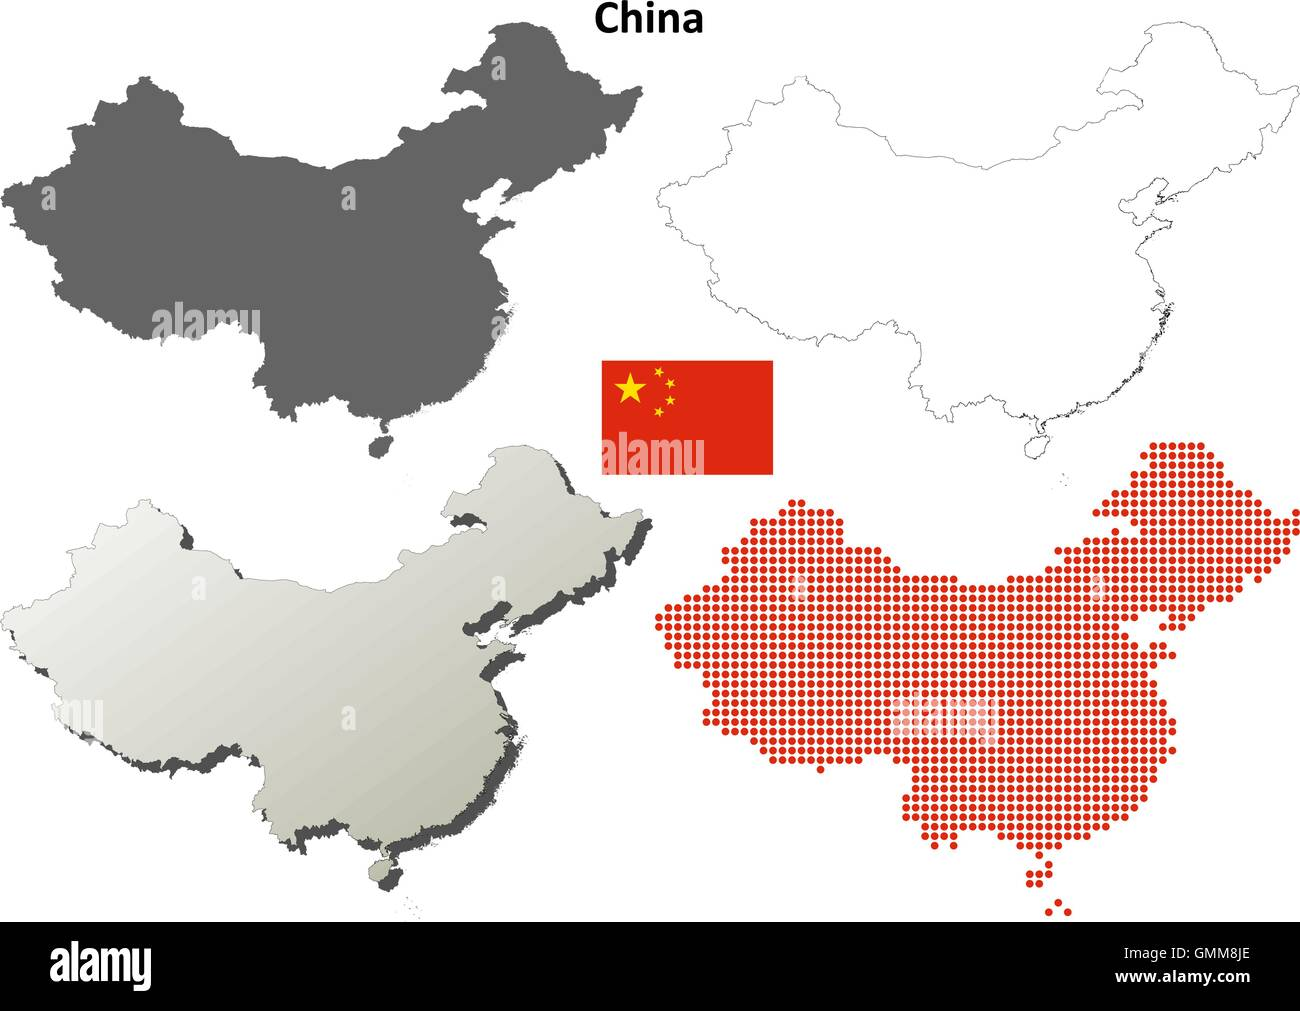 China outline map set - Stock Image